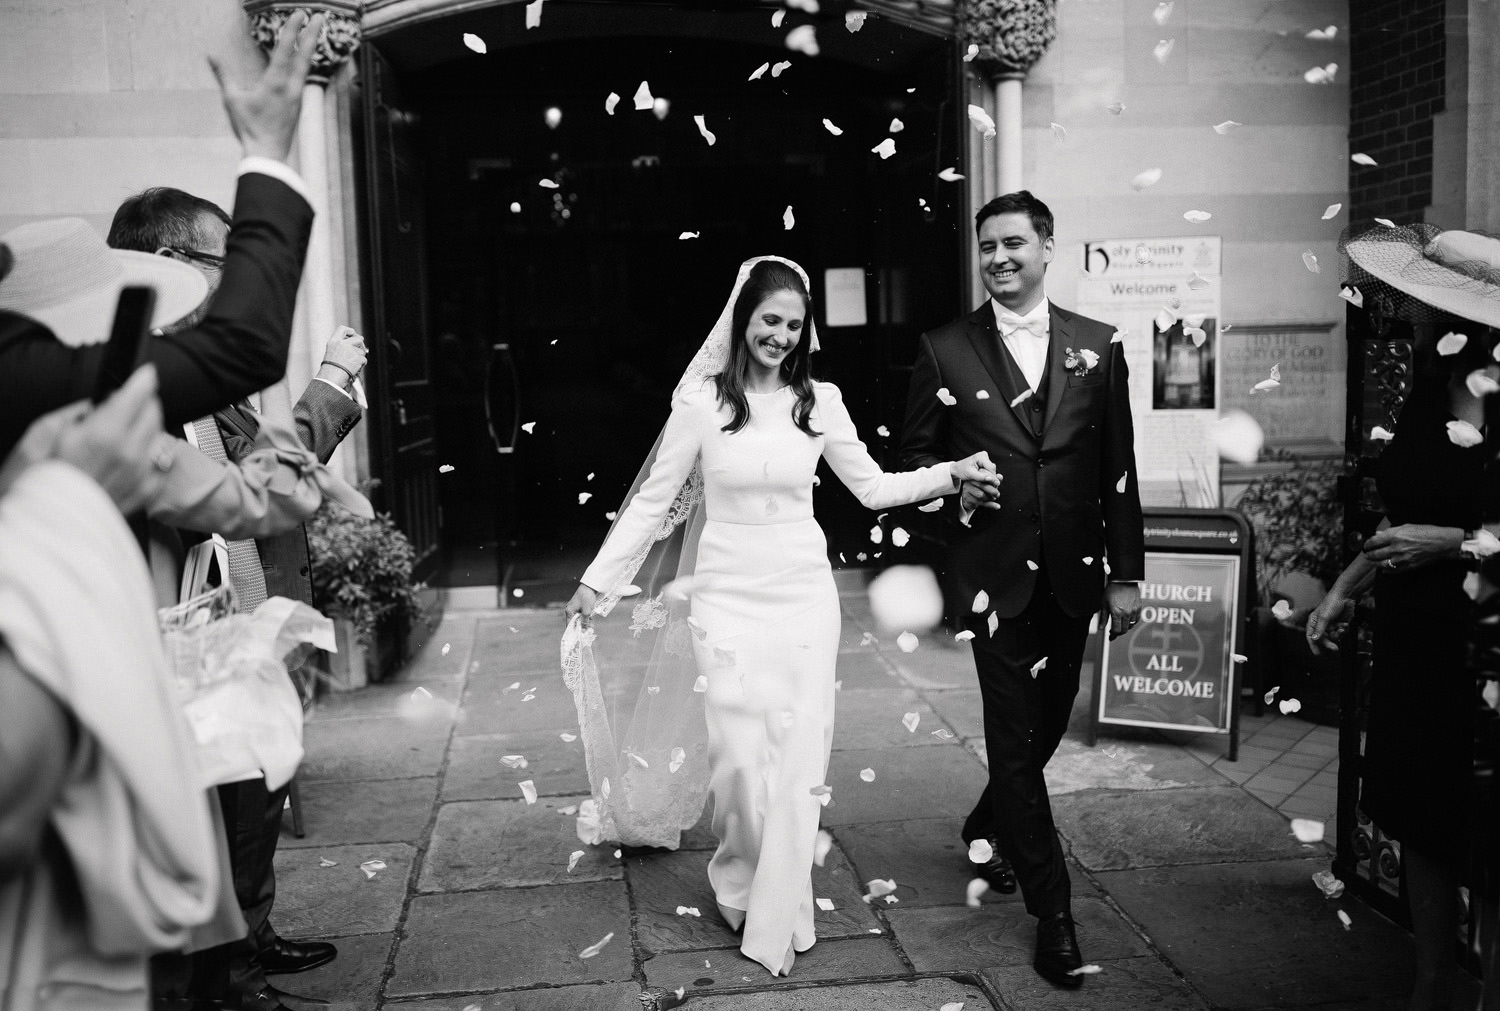 bride and groom walking out of Sloane street church with confetti in the air